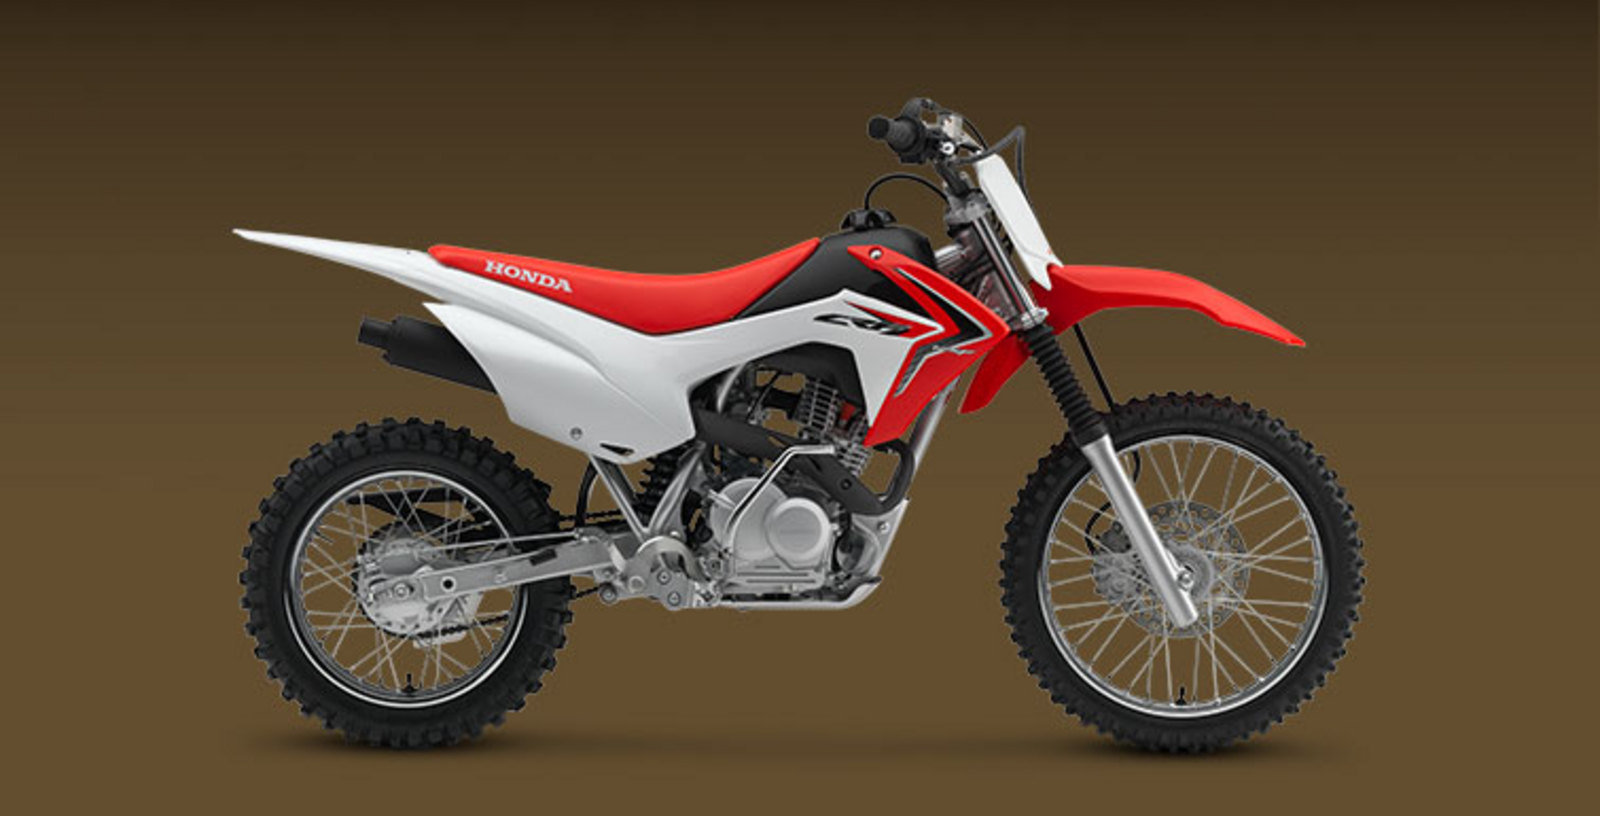 2014 honda crf125f review gallery top speed. Black Bedroom Furniture Sets. Home Design Ideas